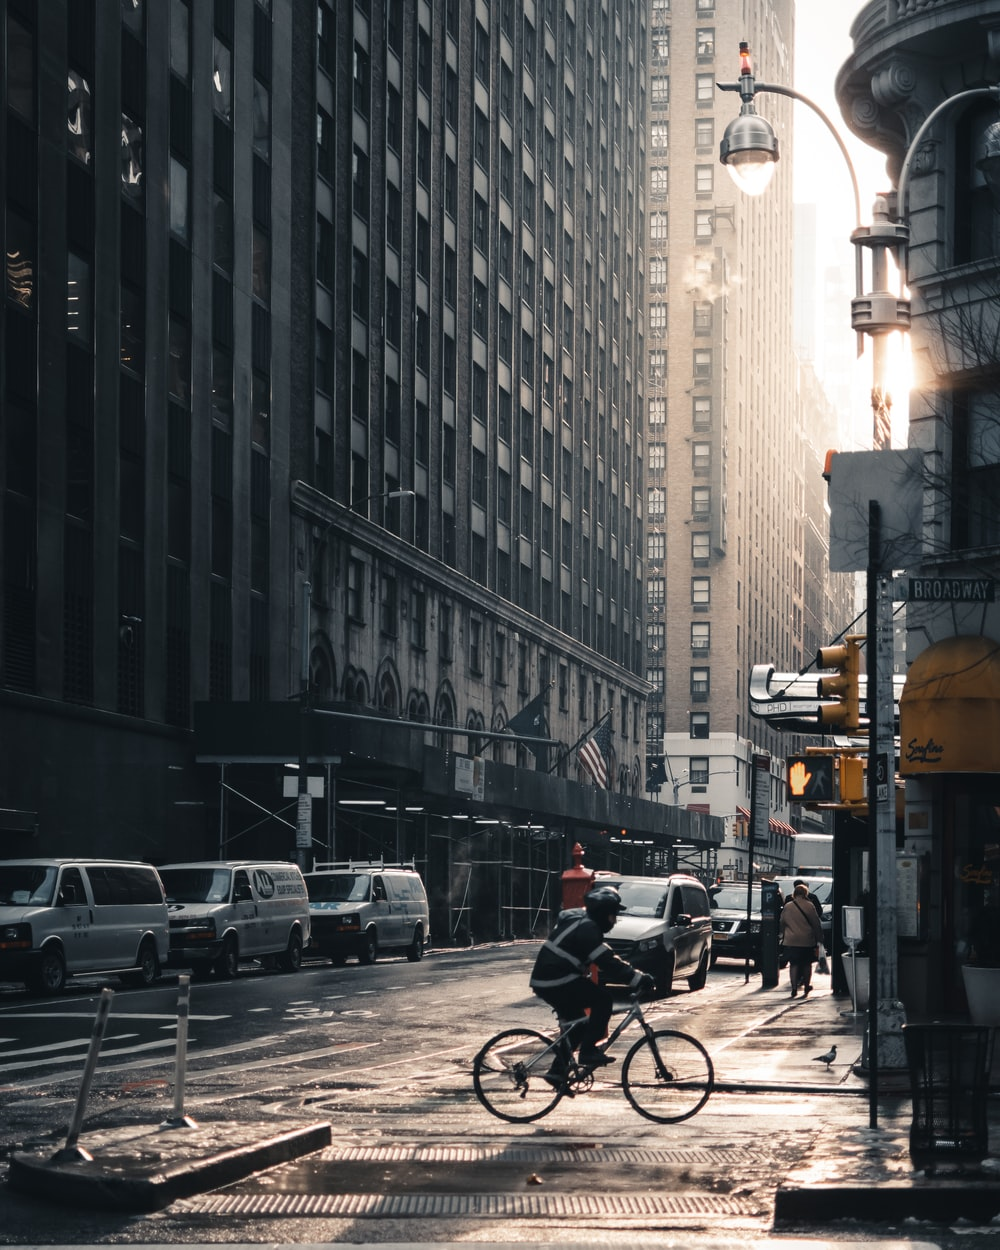 man on bicycle near building